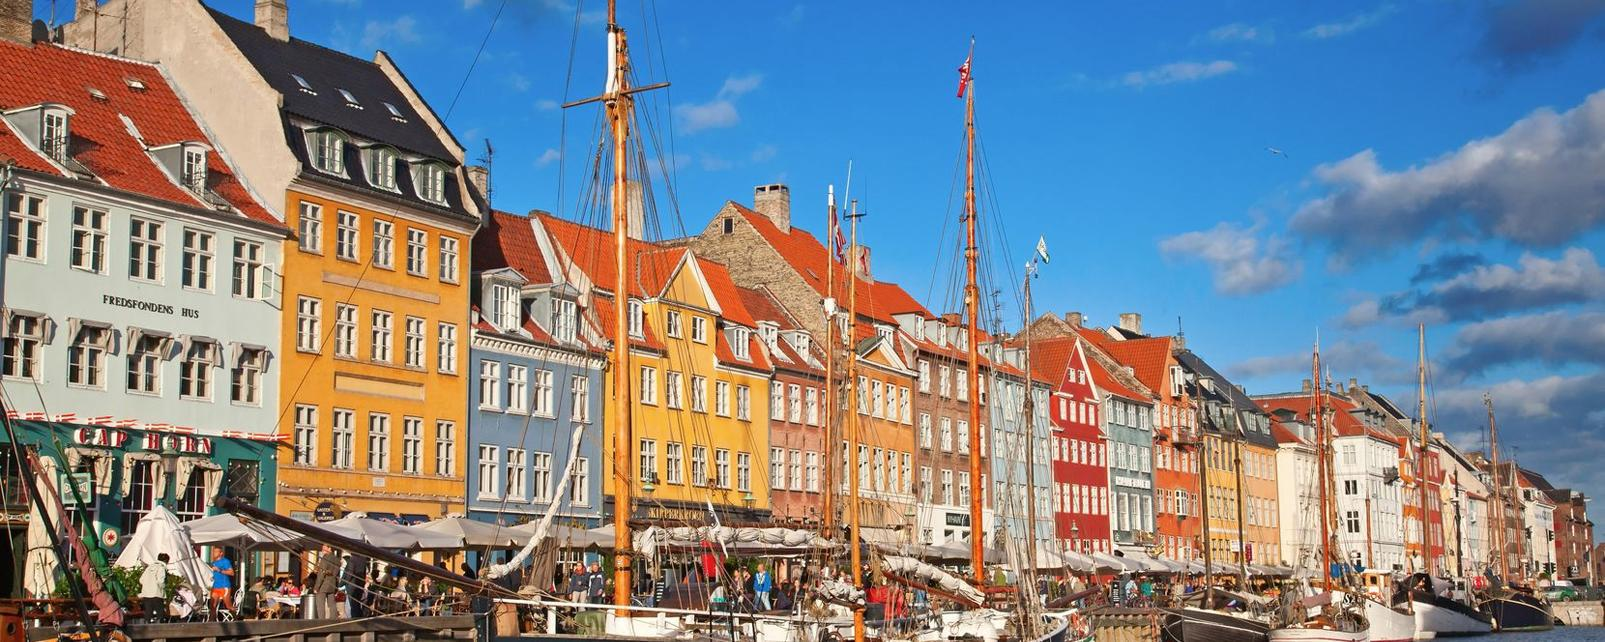 Europe; Danemark; Copenhague;